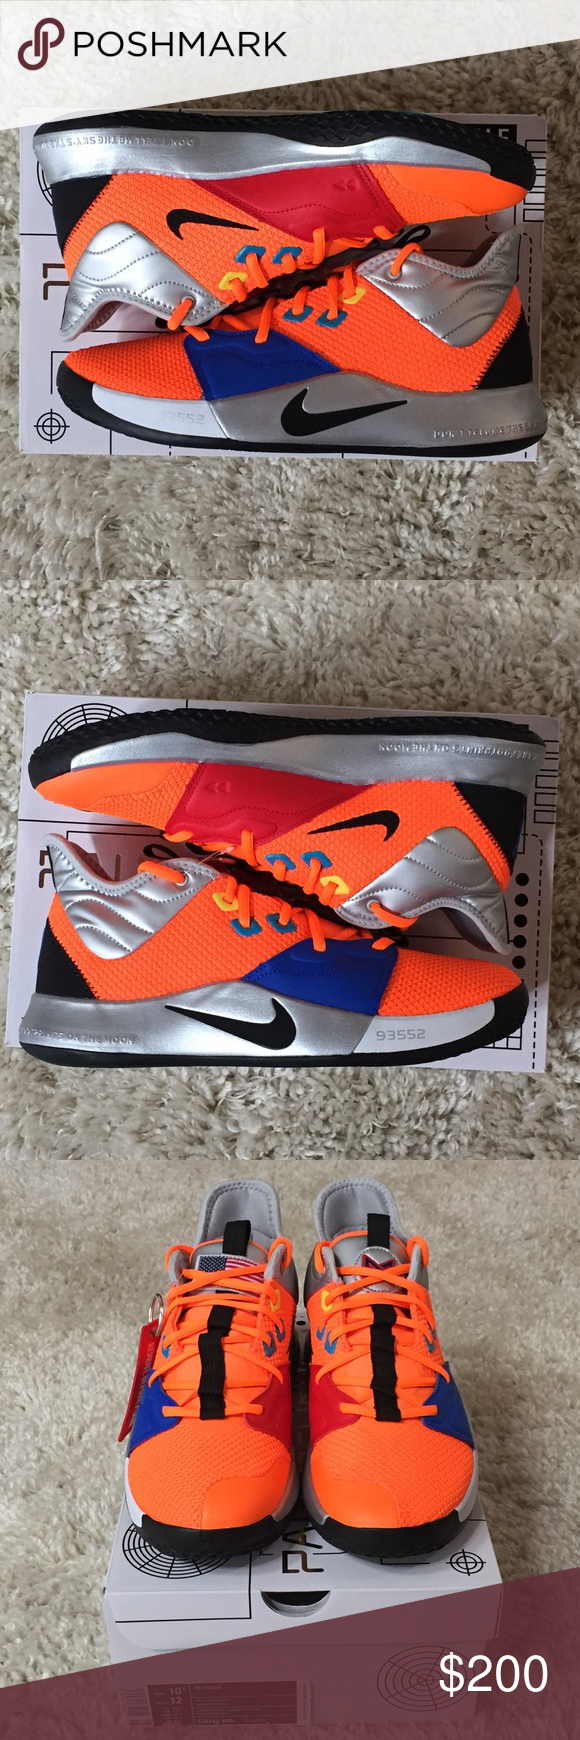 Nike X NASA Paul George PG 3 CL2666-800 11 93552 Selling a Brand New ... 7aa948dcb